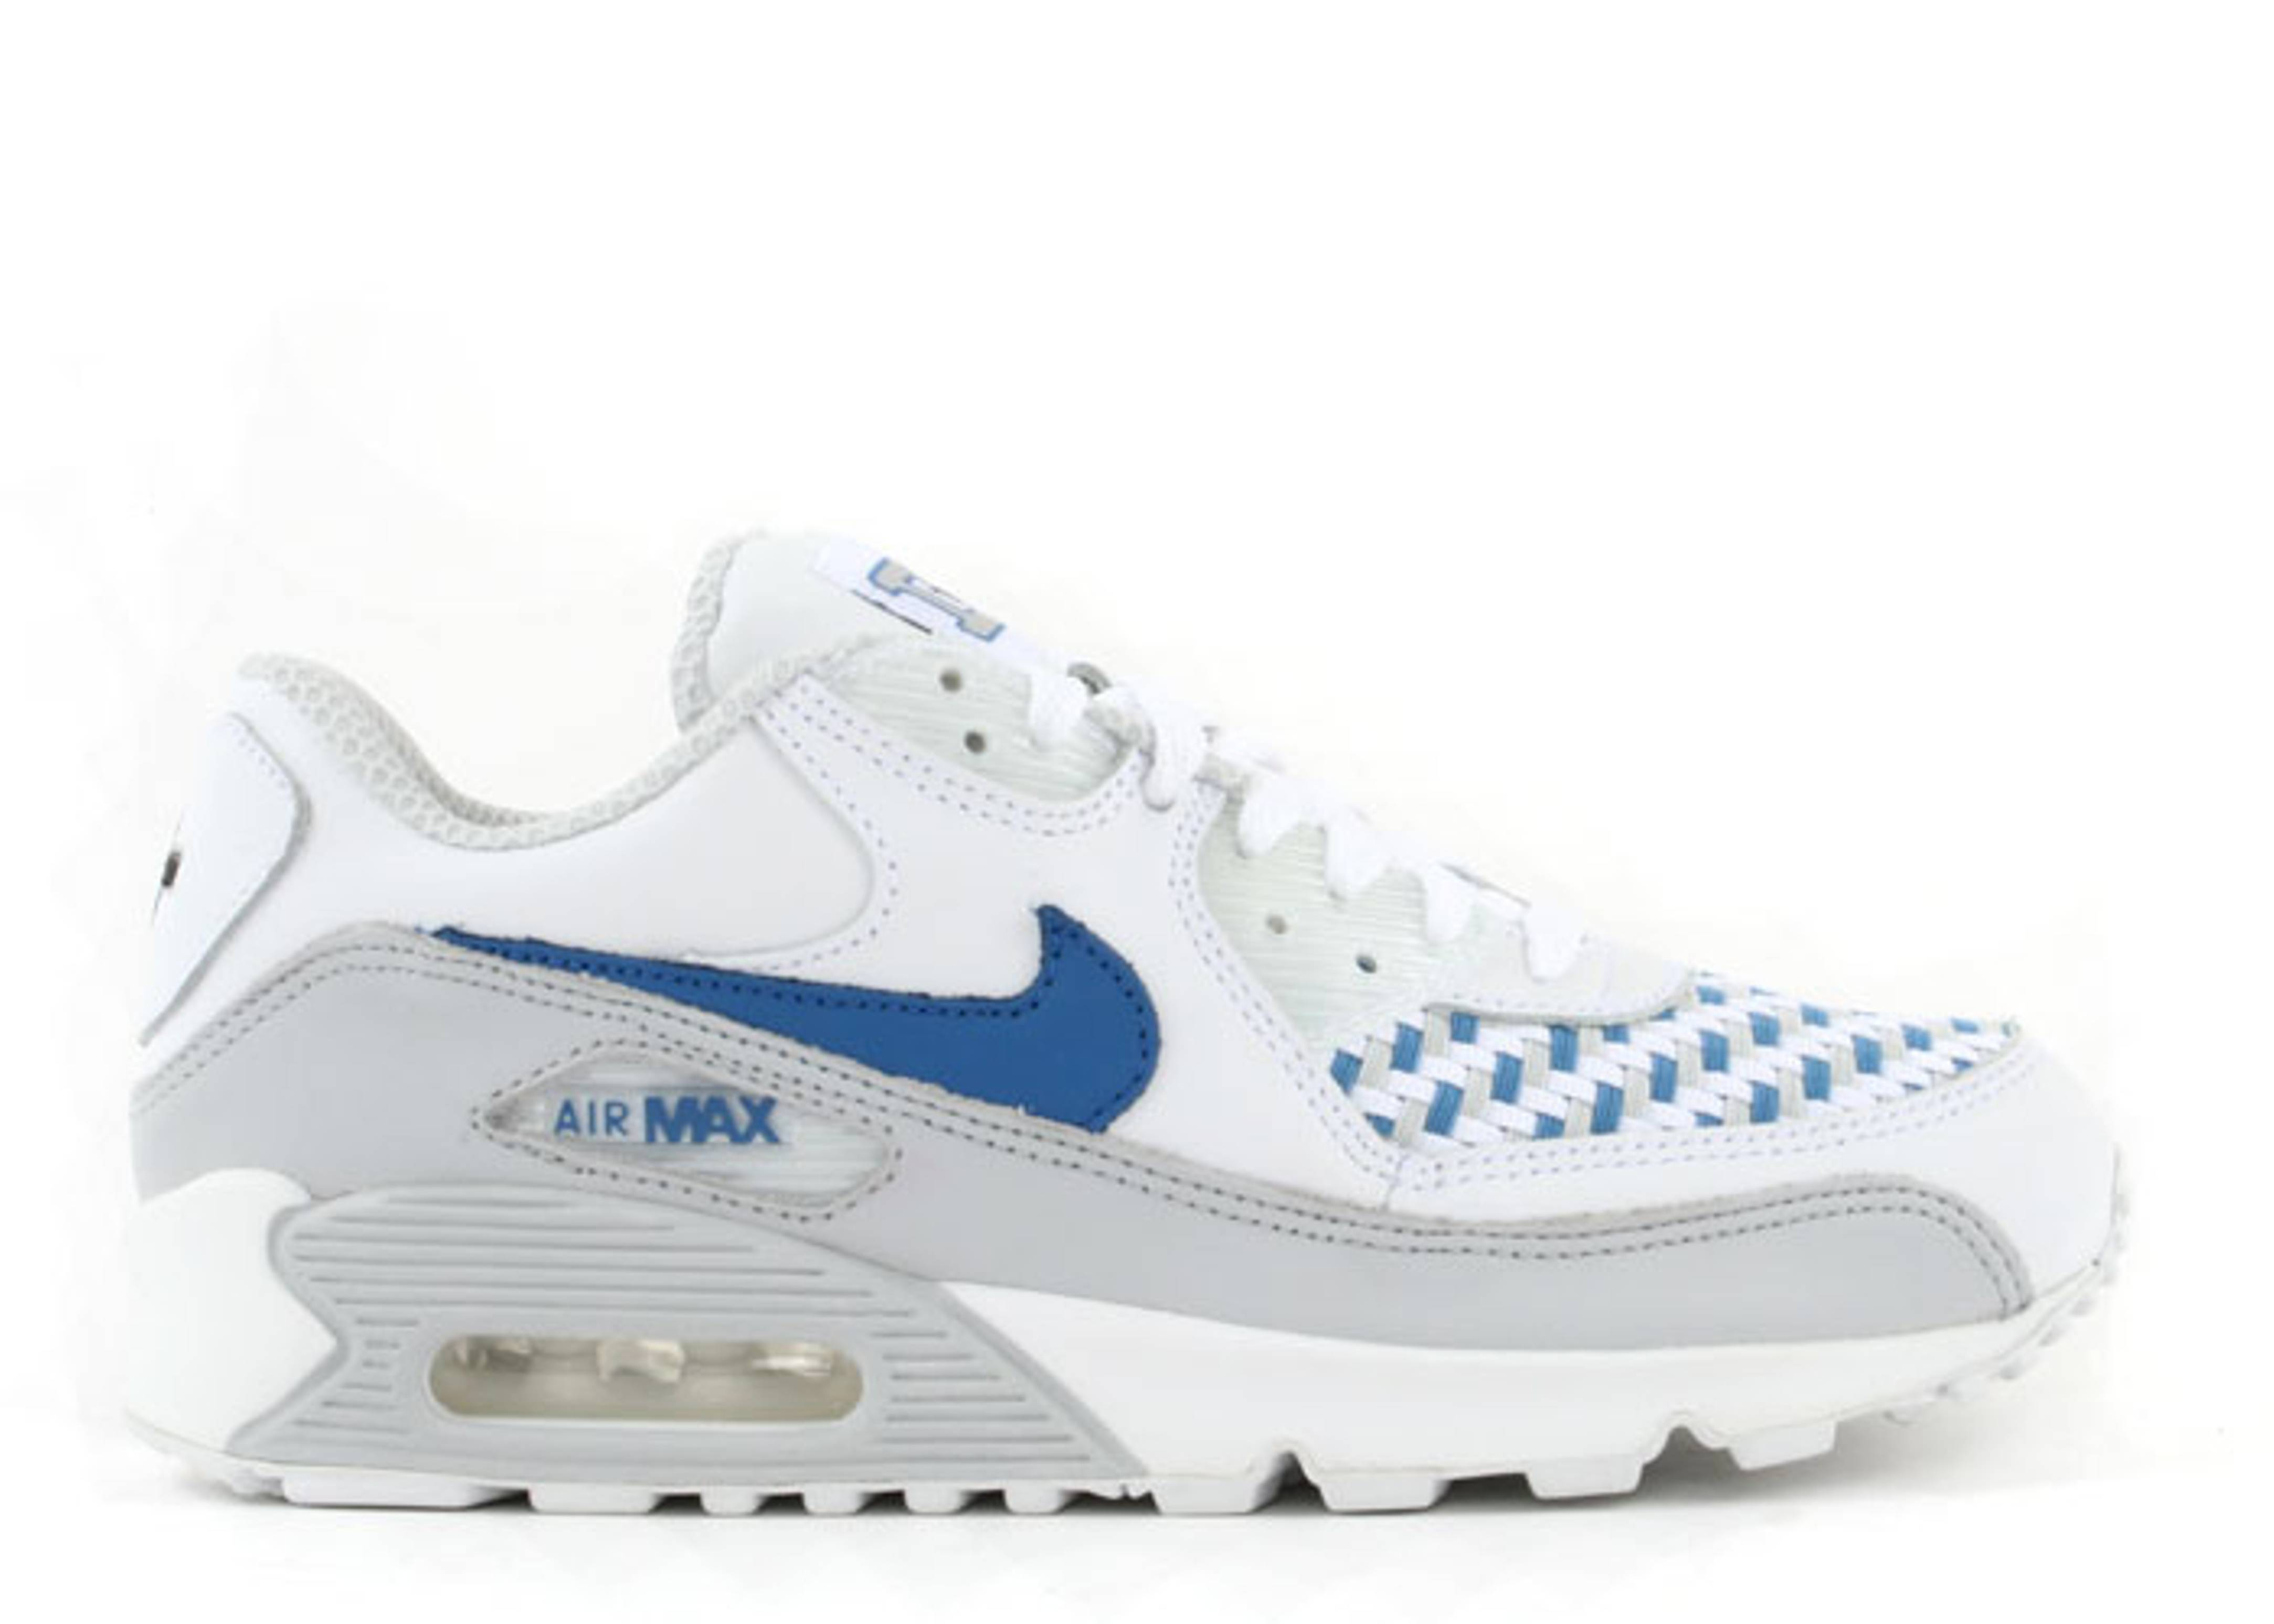 finest selection 3a477 82917 Air Max 90 Leather - Nike - 302519 144 - white varsity blue-neutral grey  (d-town)   Flight Club